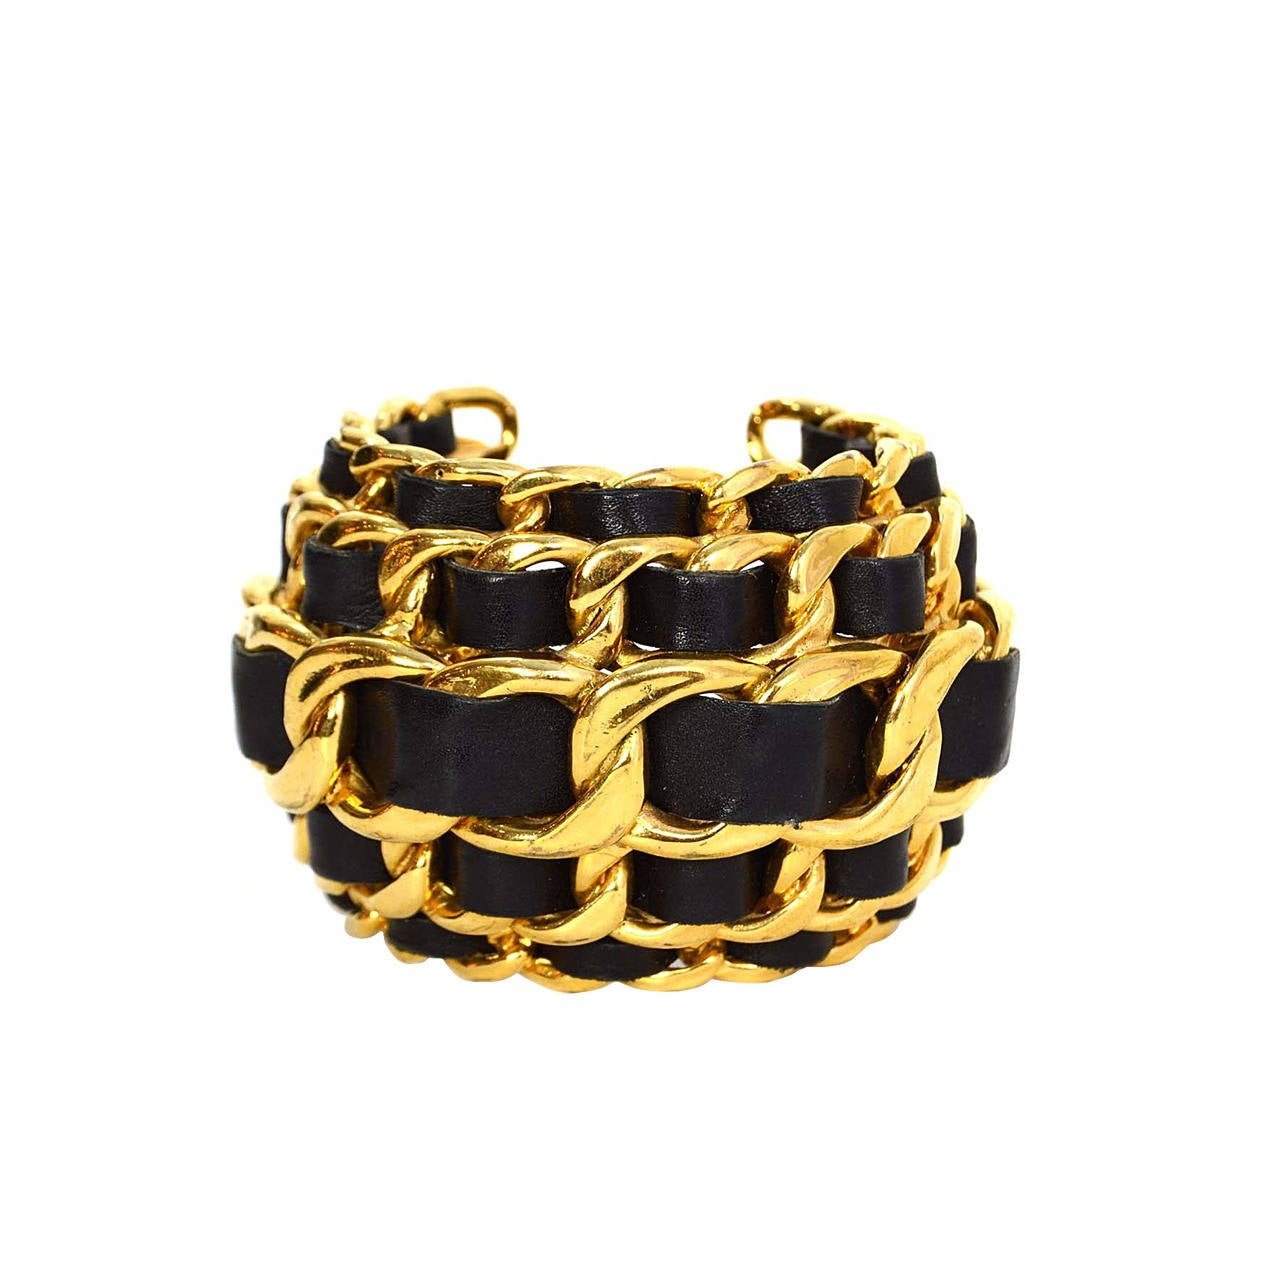 CHANEL Vintage '87 Black Leather Woven Gold Five-Tier Chain Link Cuff Bracelet 1